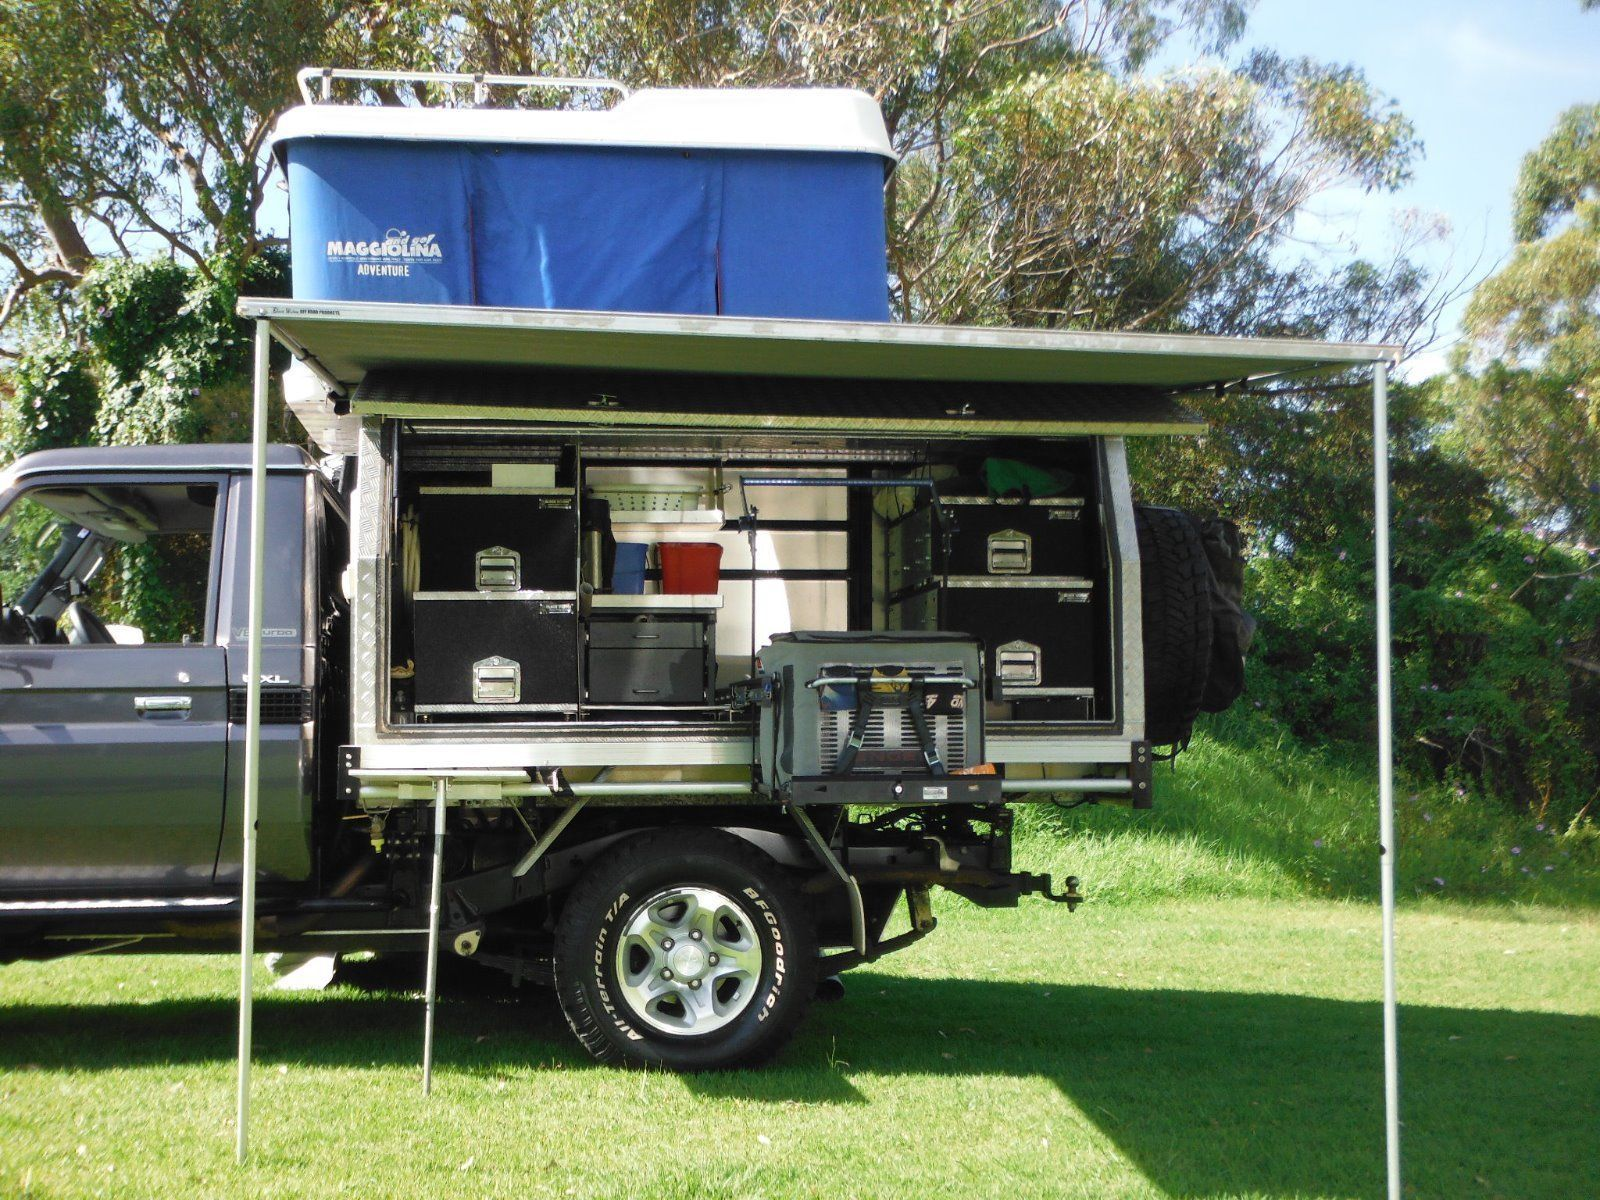 ute canopy for c&ing - Google Search | karavan | Pinterest | Ute Canopy and C&ing : metalink canopies - memphite.com